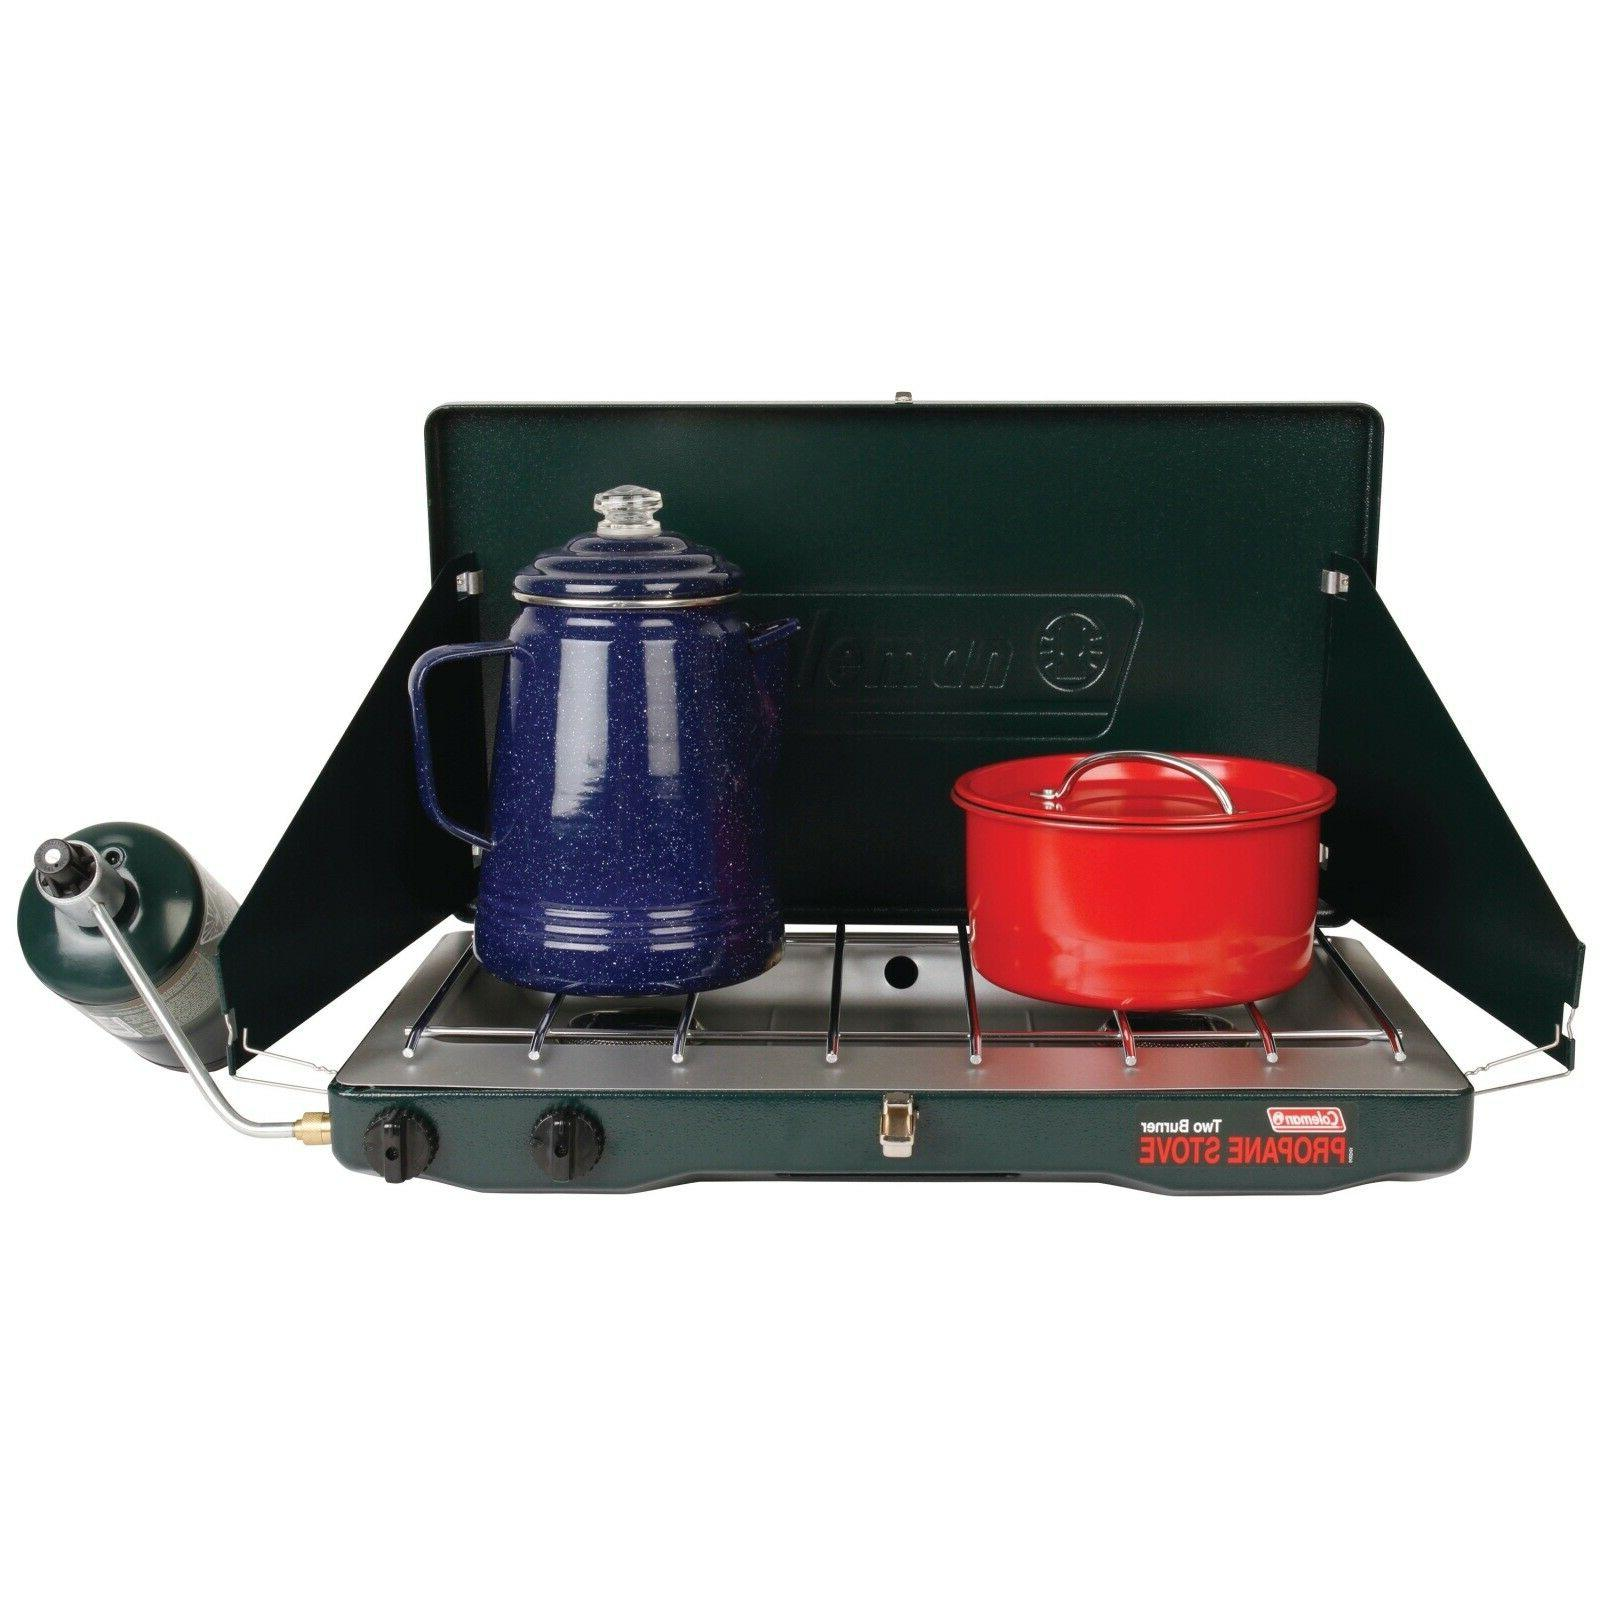 CAMP Burner Outdoor Camping Portable Cooking